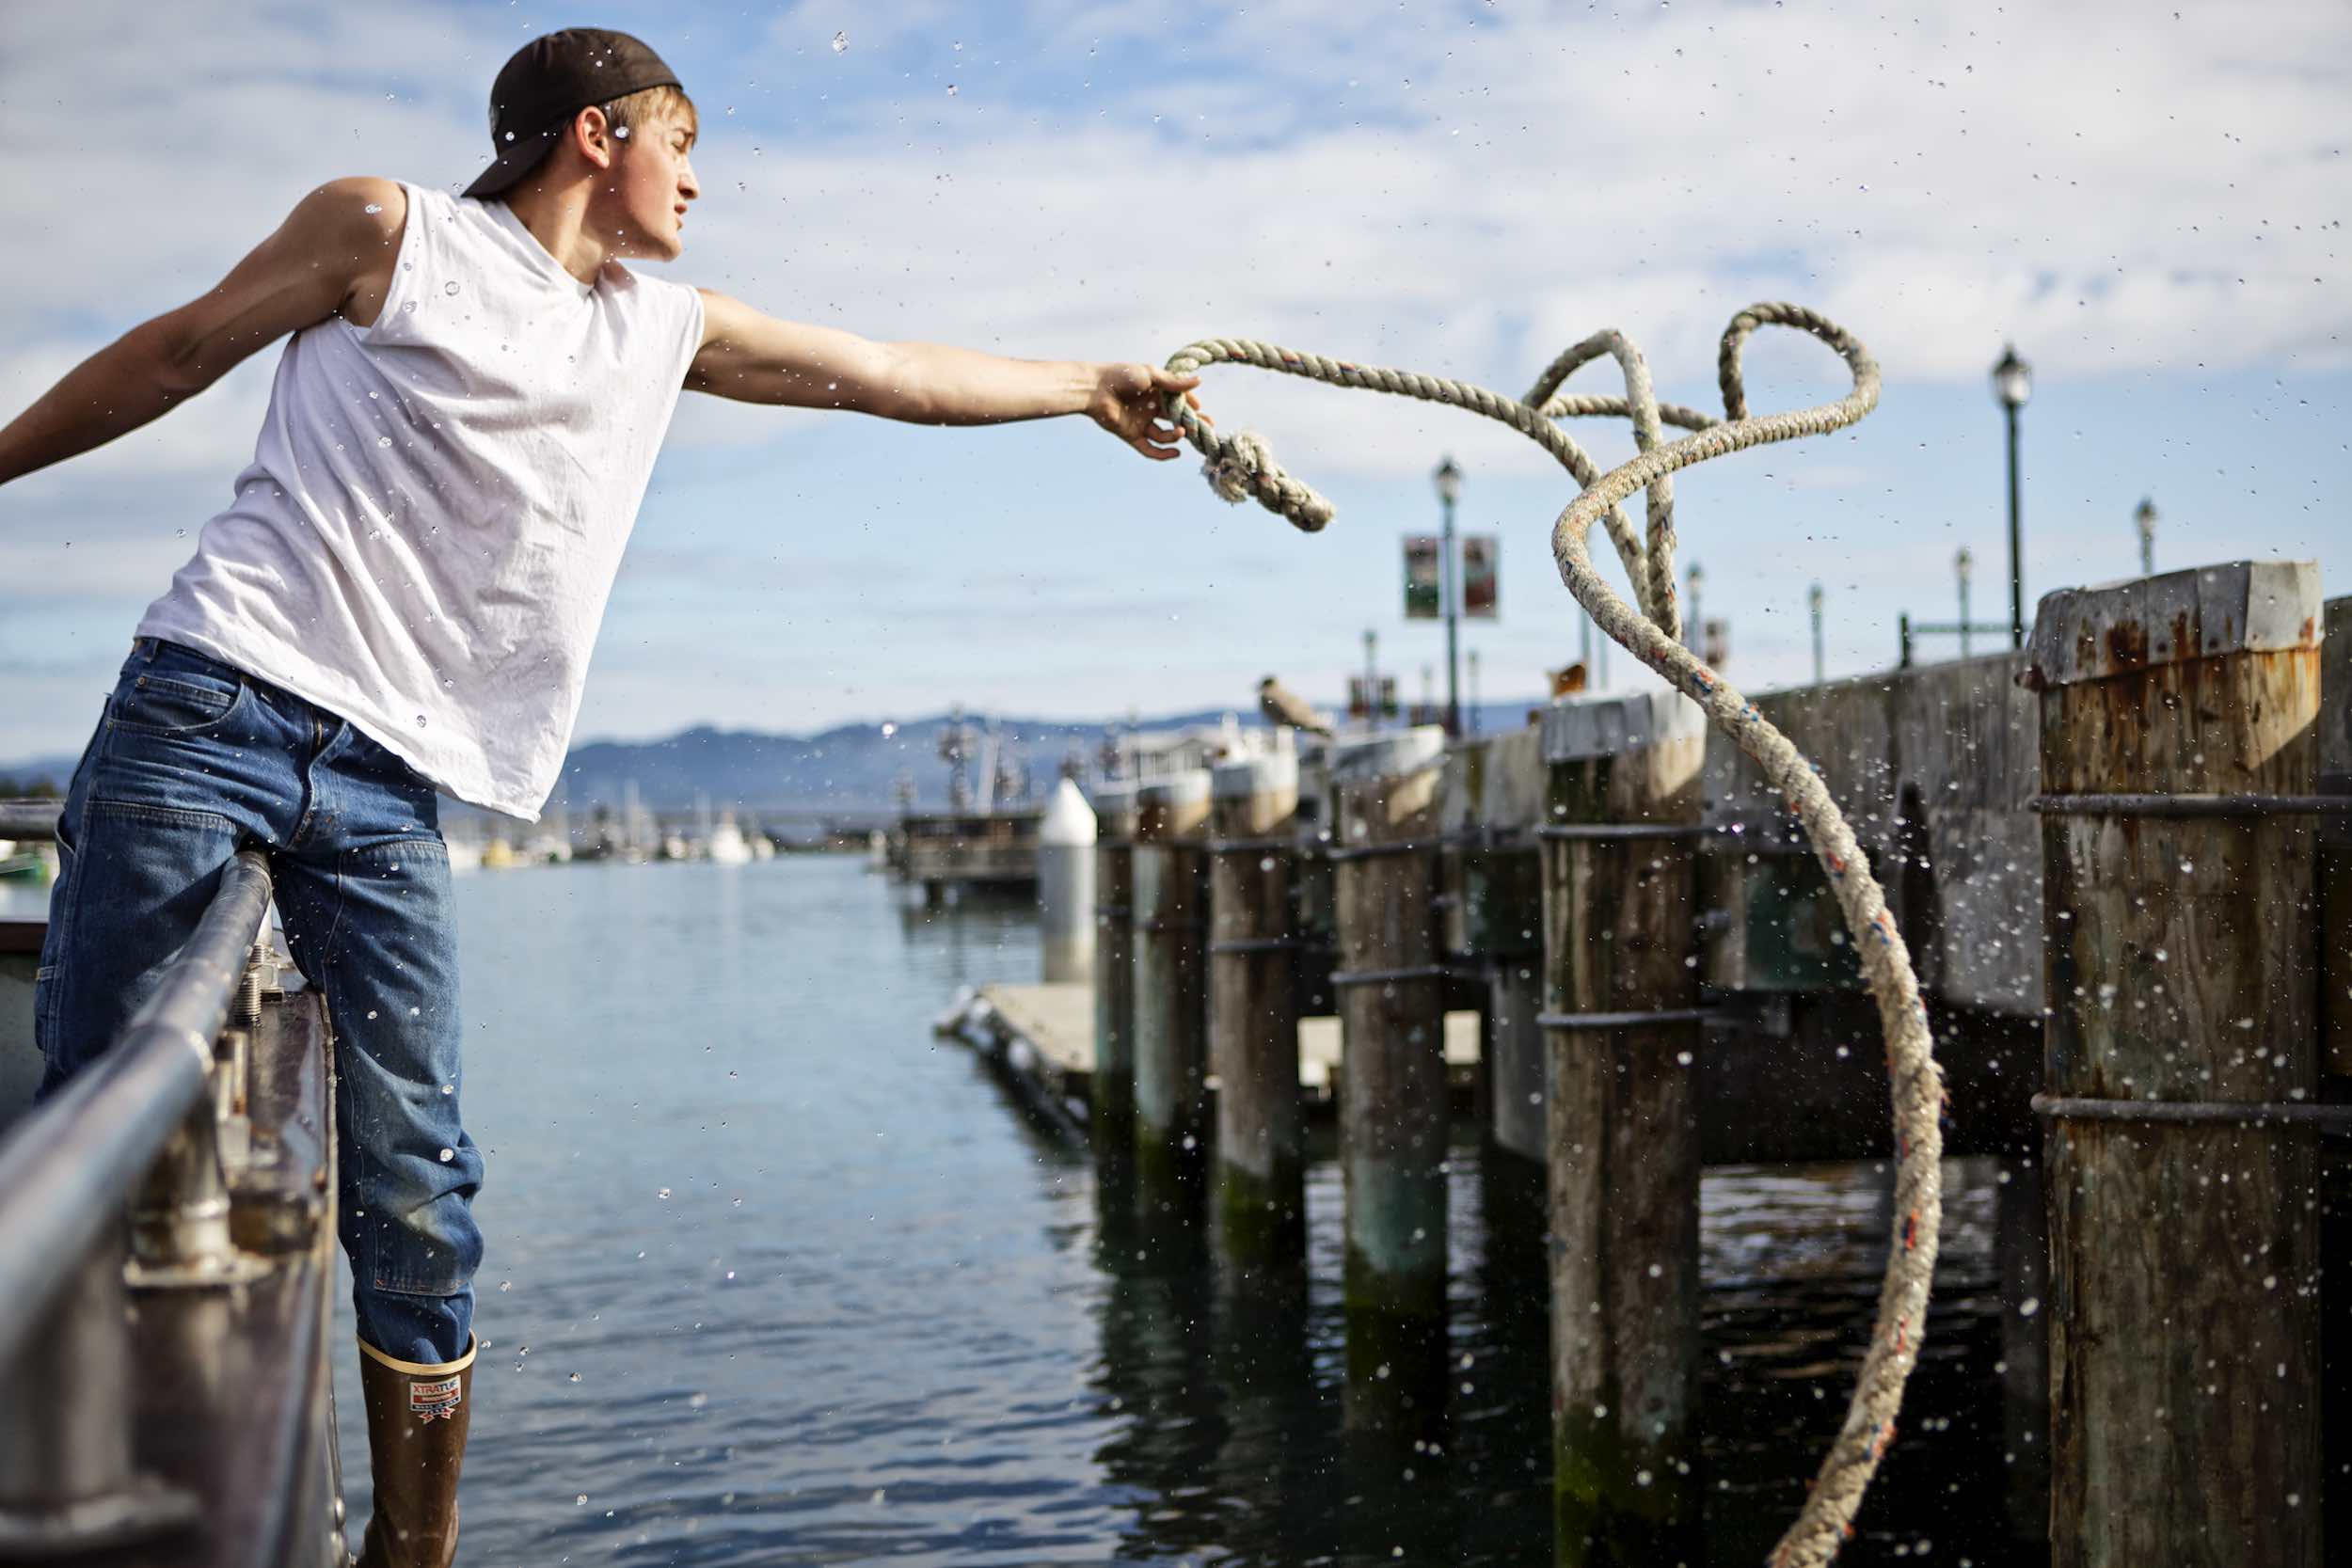 Jody Horton Photography - Fisherman casting rope from boat.